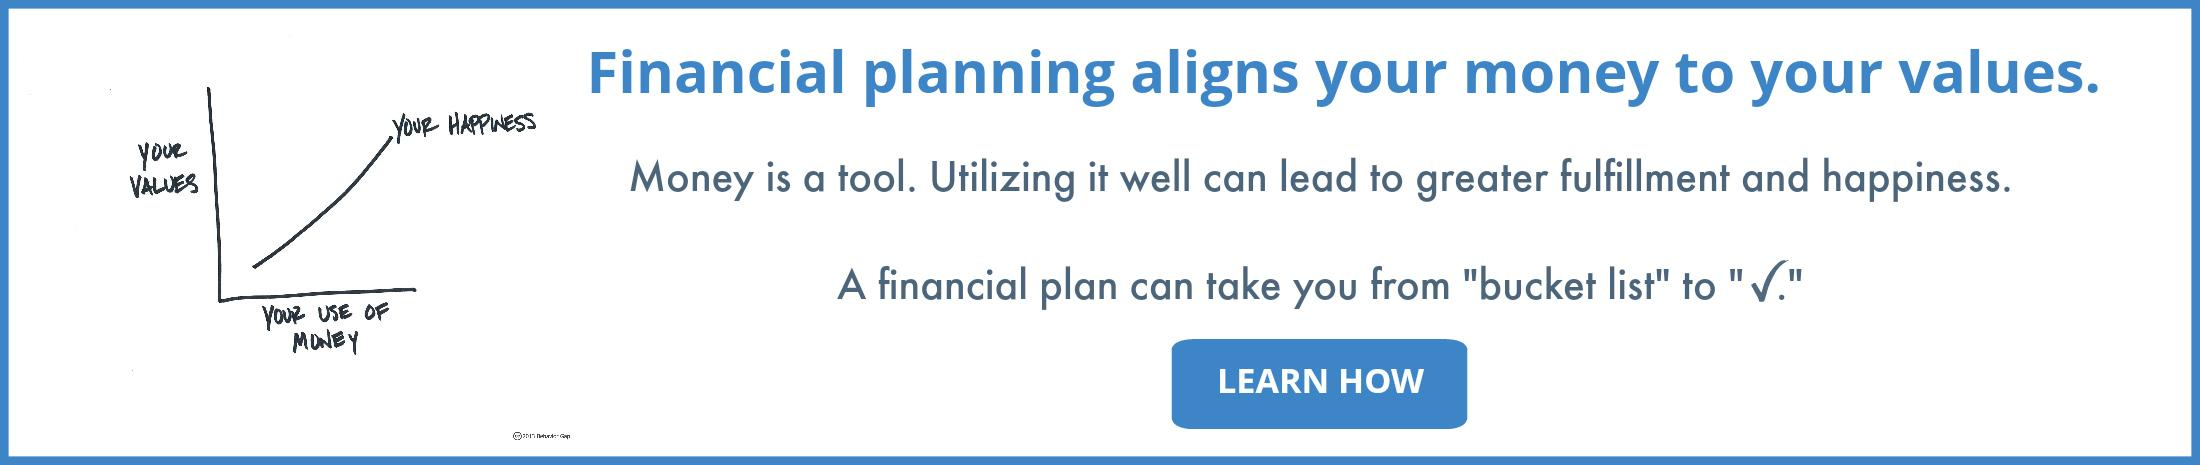 Azimuth Wealth Management Why Financial Planning banner